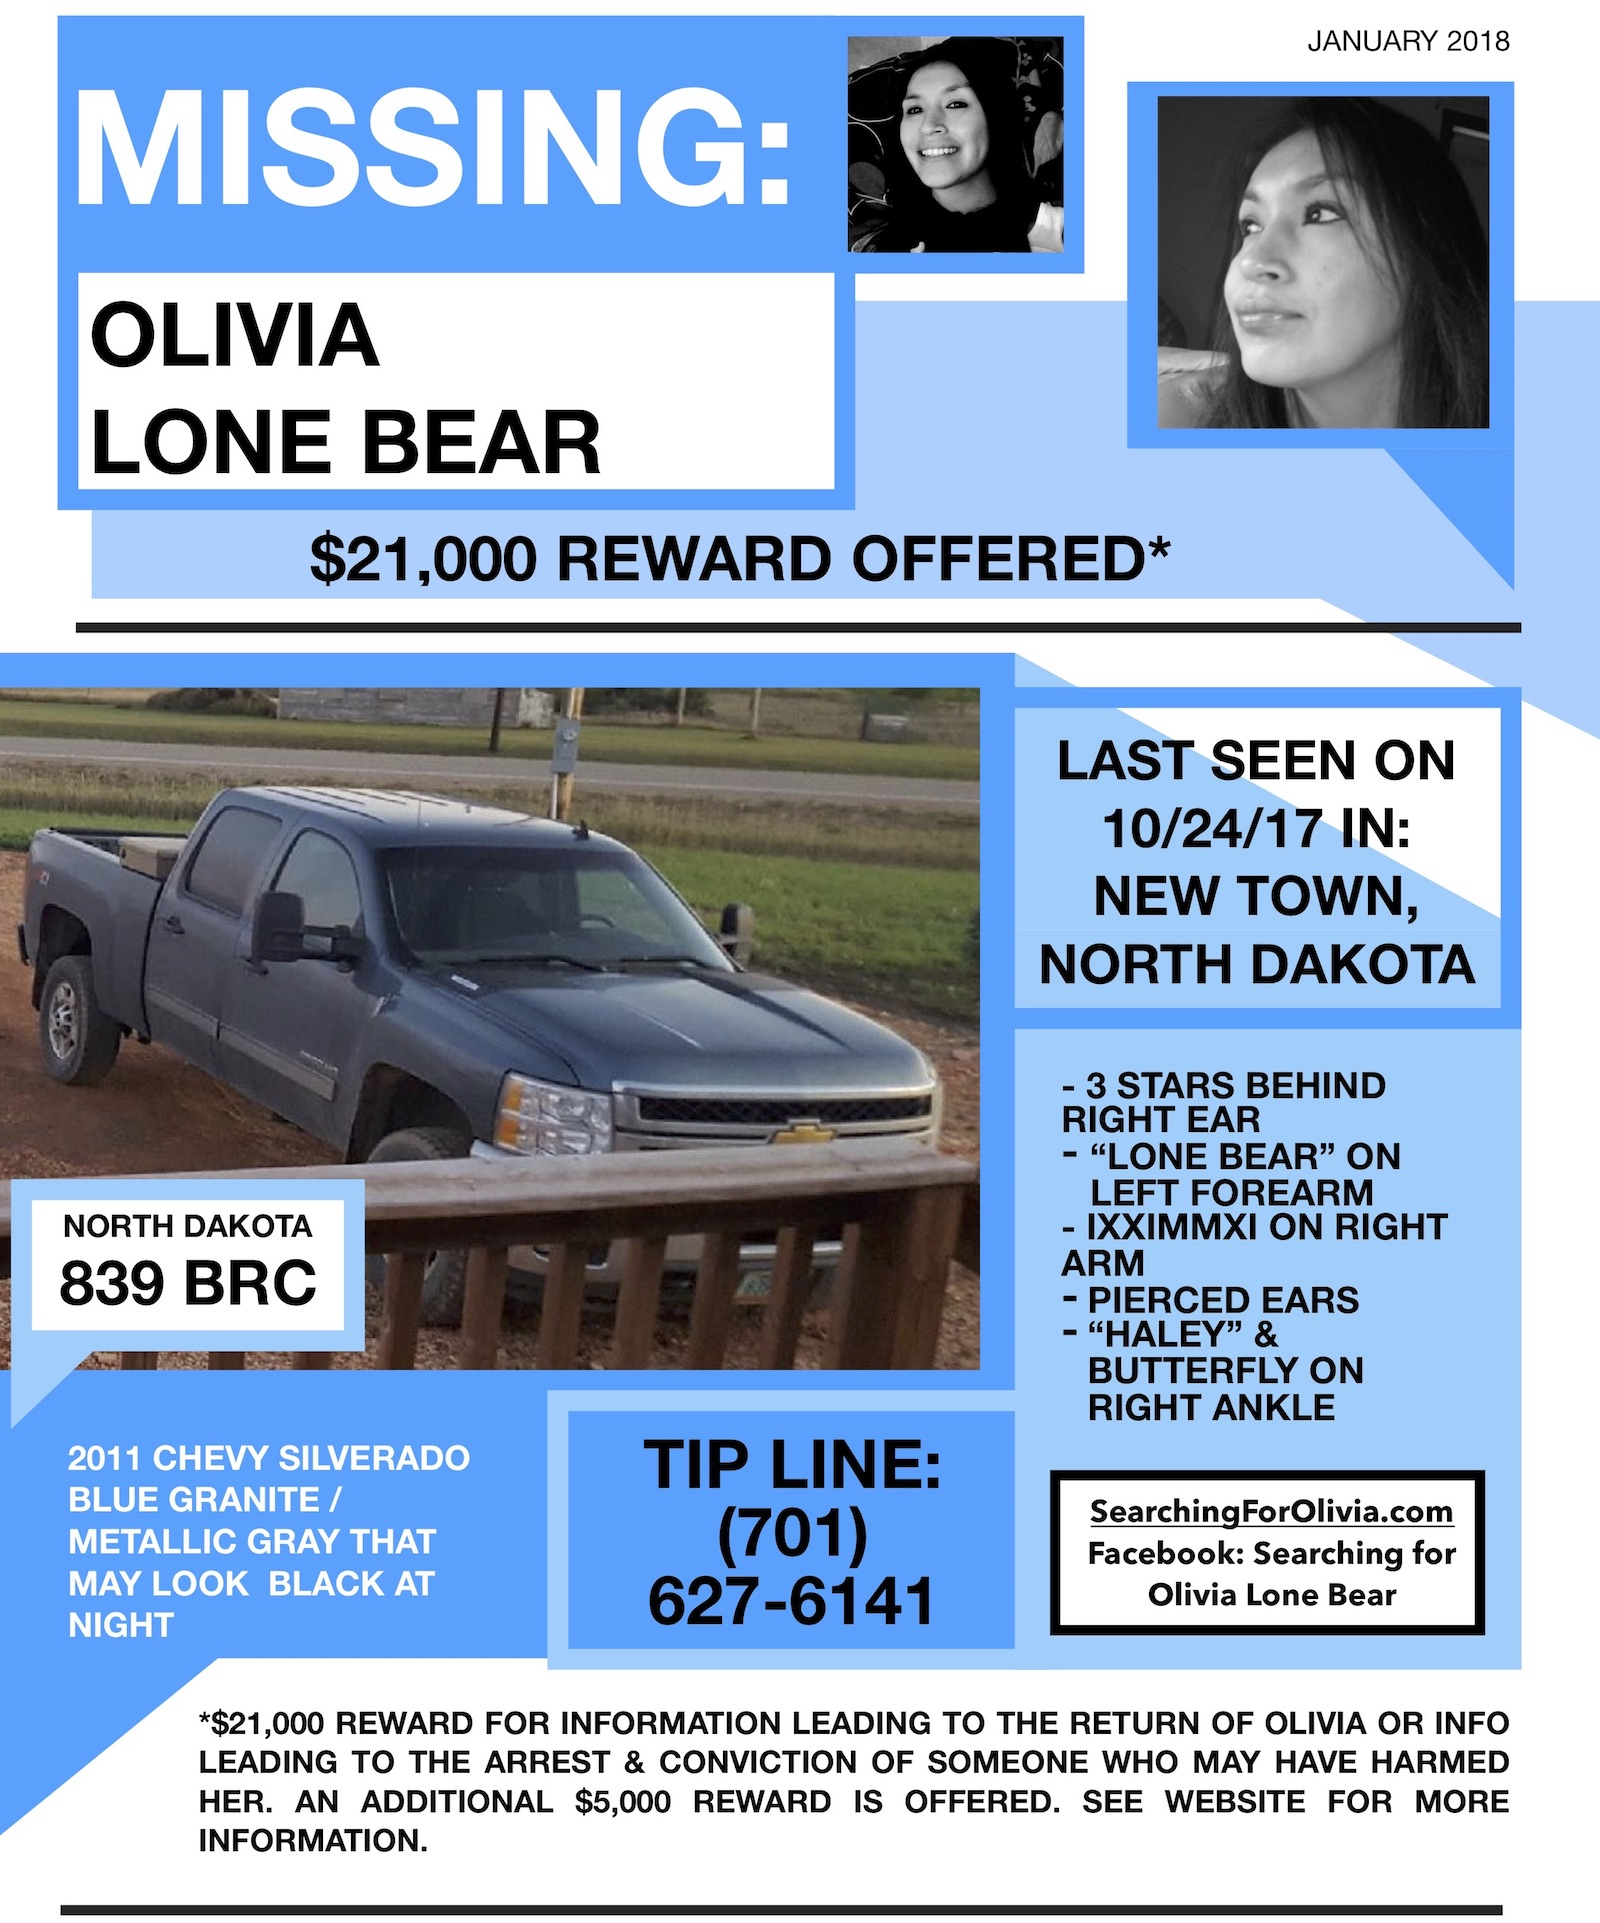 Jacqueline Keeler: The Search Continues For Olivia Lone